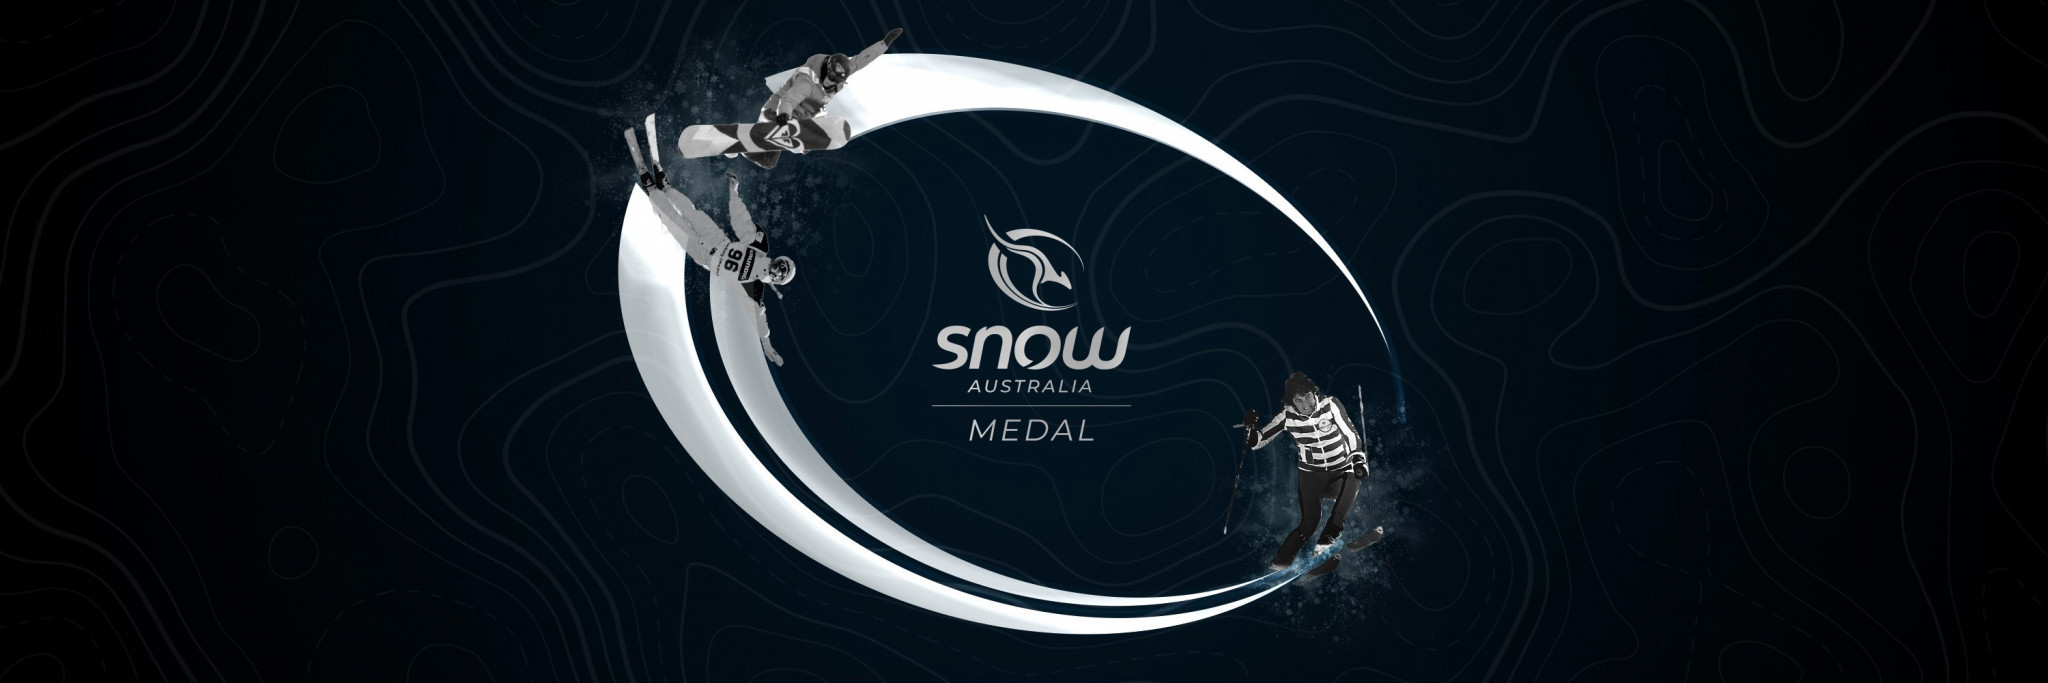 A design for the Snow Australia Medal will be finalised later in the year ©Snow Australia